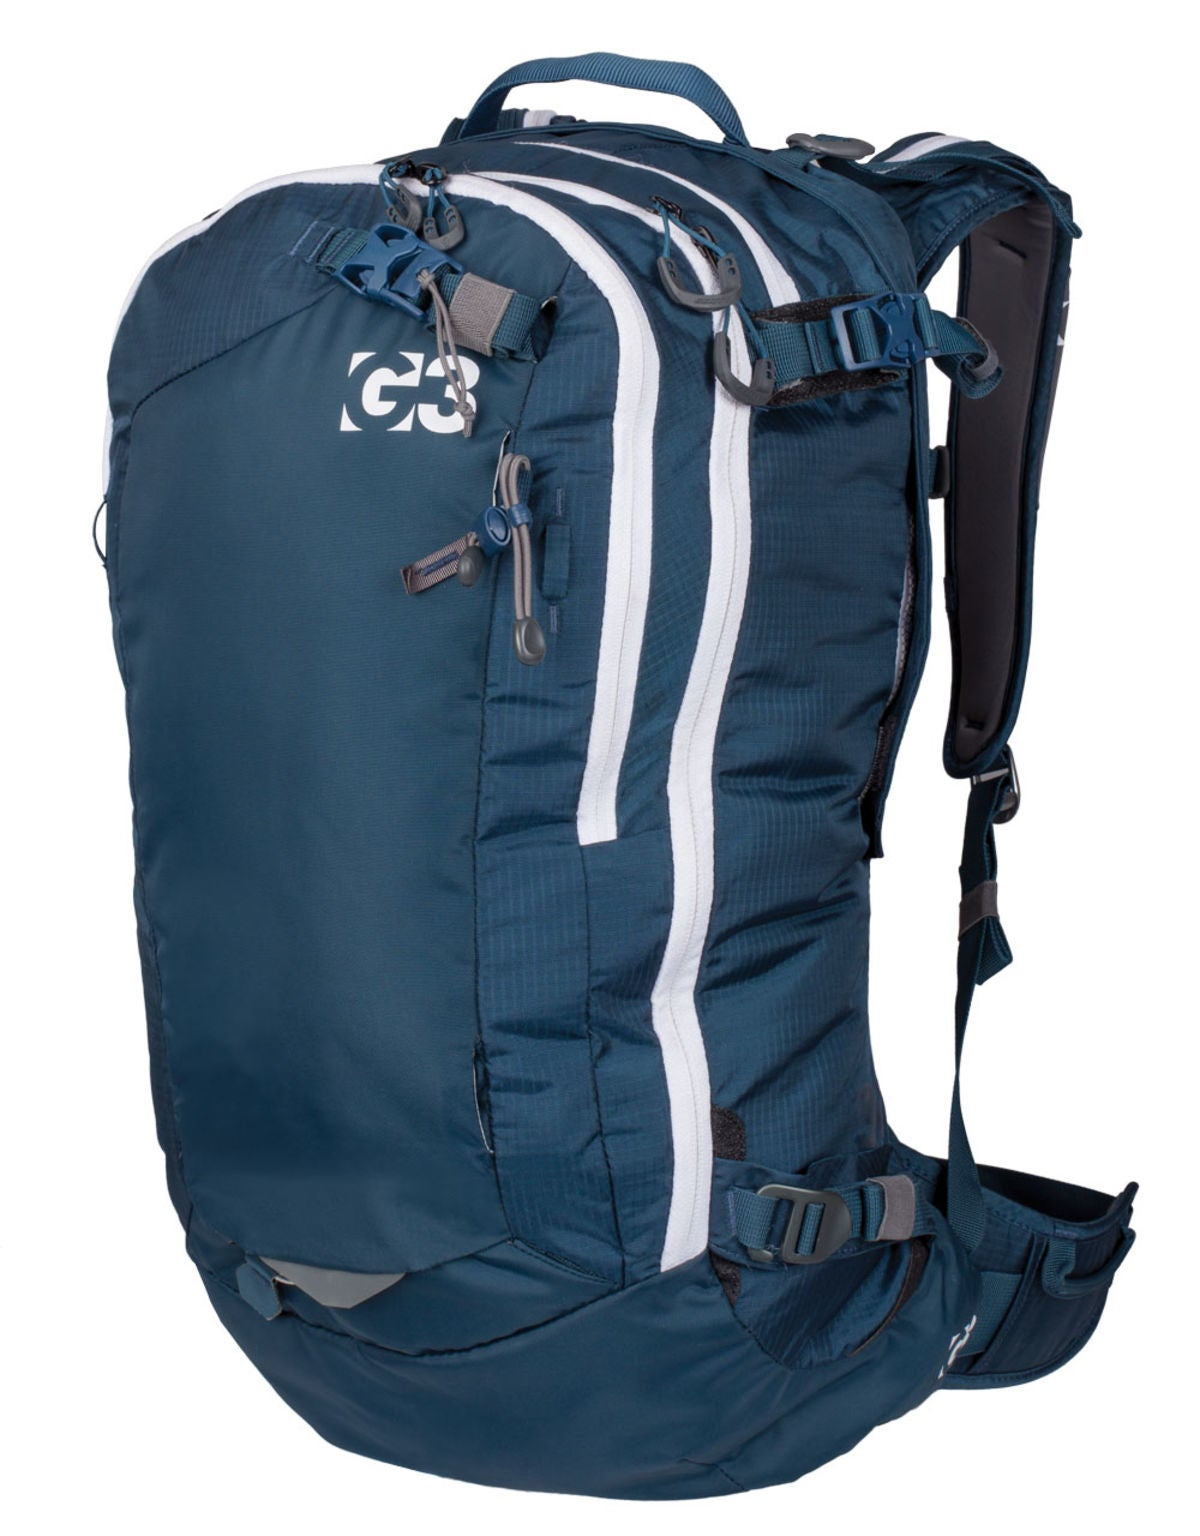 G3 Cabrio 30 Backpack